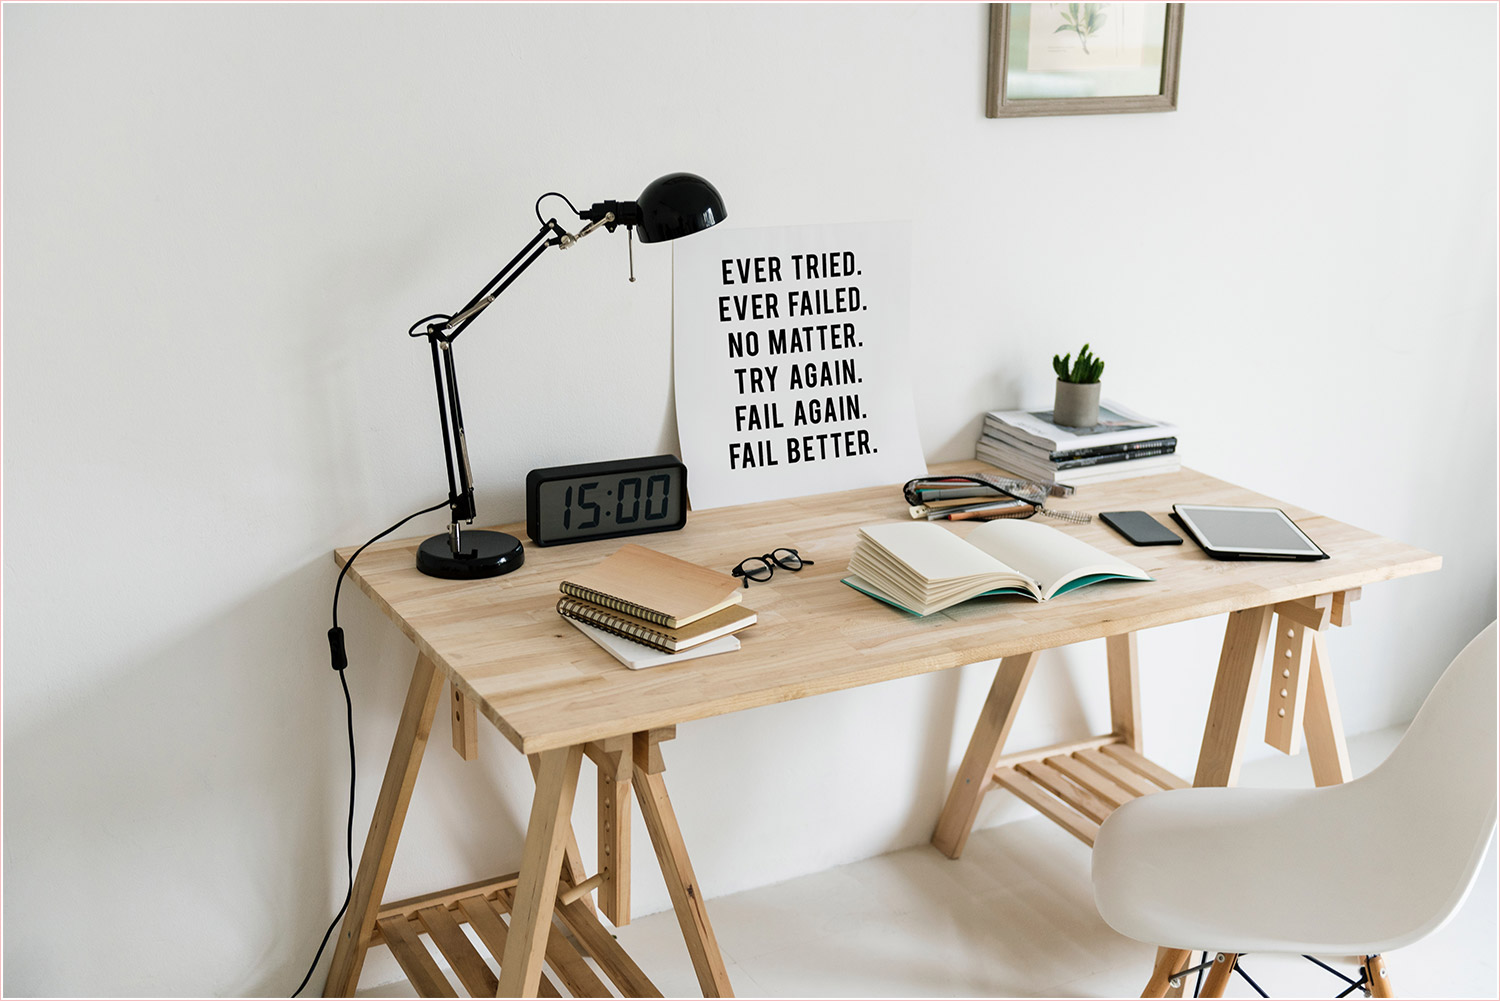 Workspace - Wooden desk with black lamp, glasses, books, tablet, motivational poster. | Helping you become a successful online solopreneur. | PearTreePond - The Solopreneur Safety Net